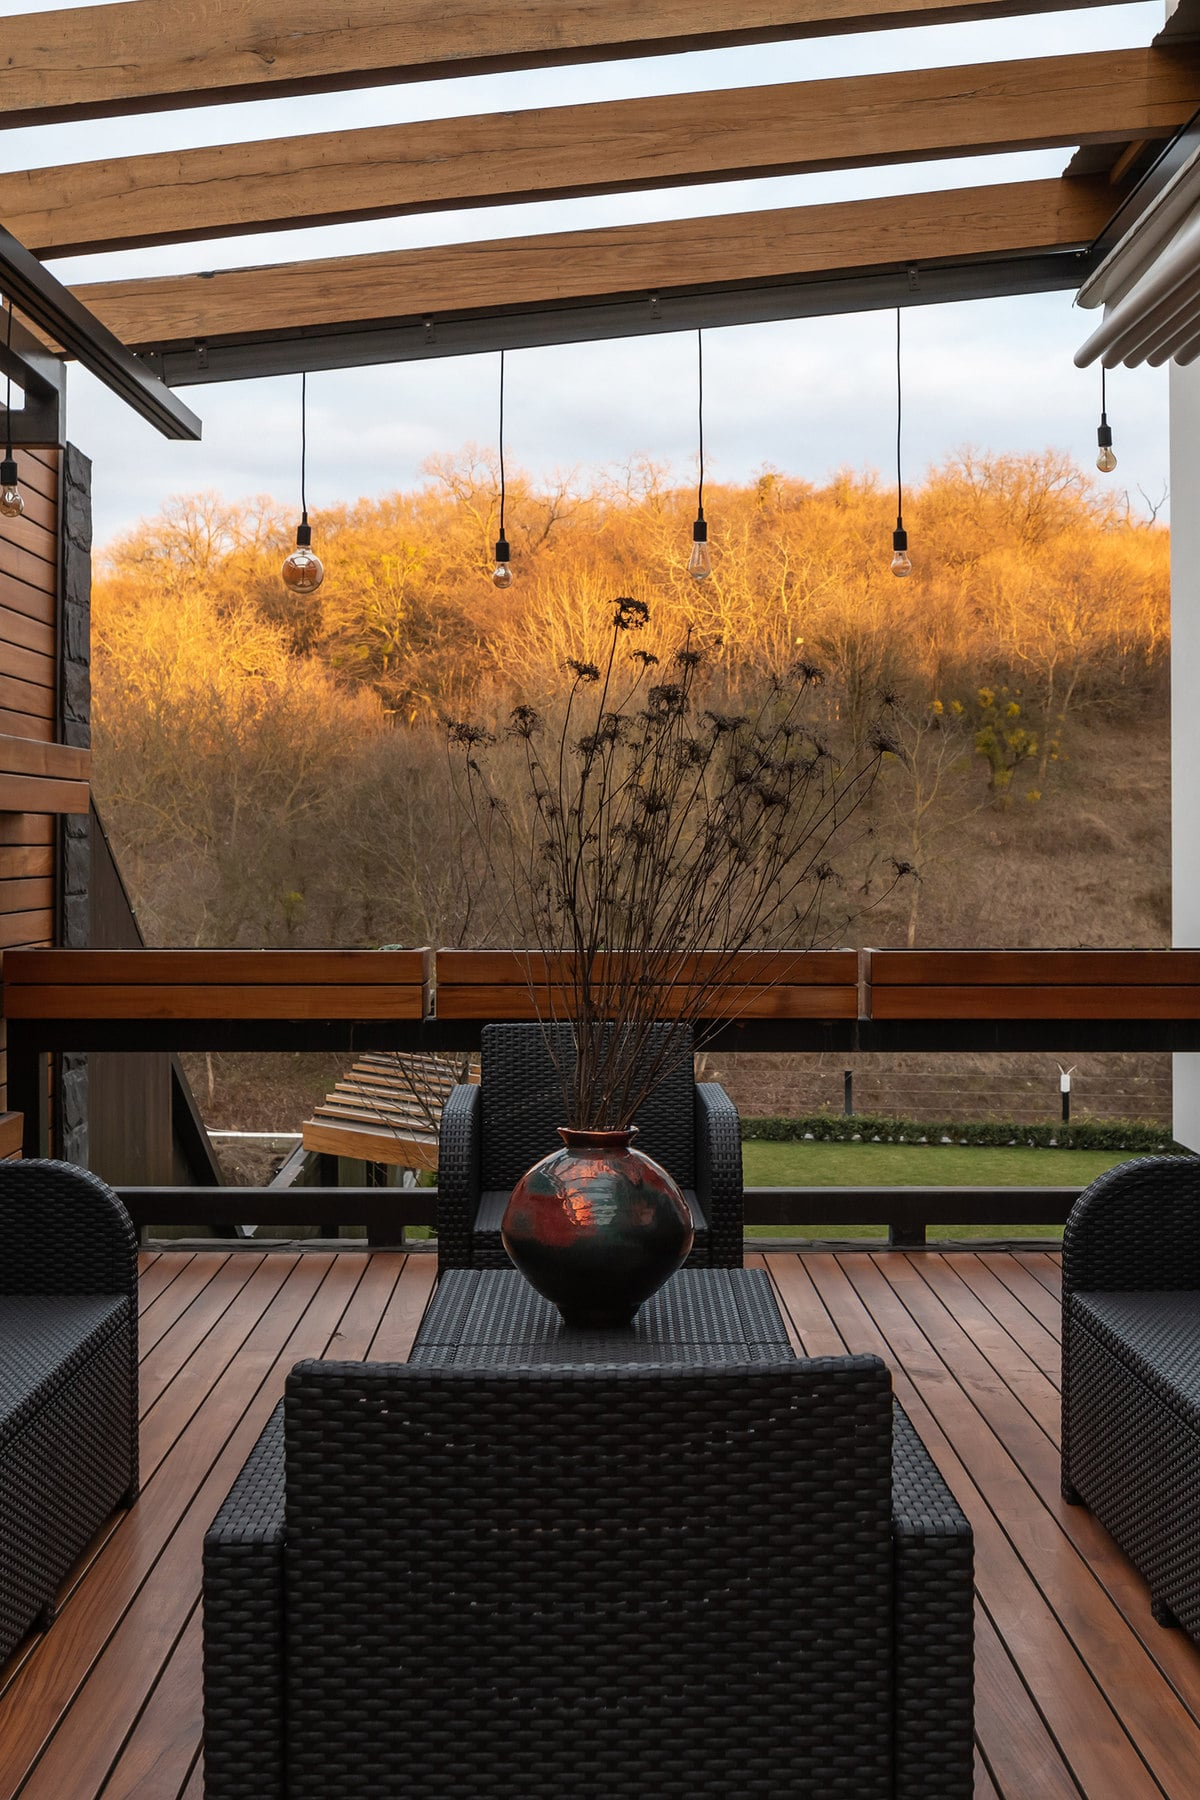 This patio area has a great view of the landscape. You can also see here a grass lawn at a lower level that the patio.